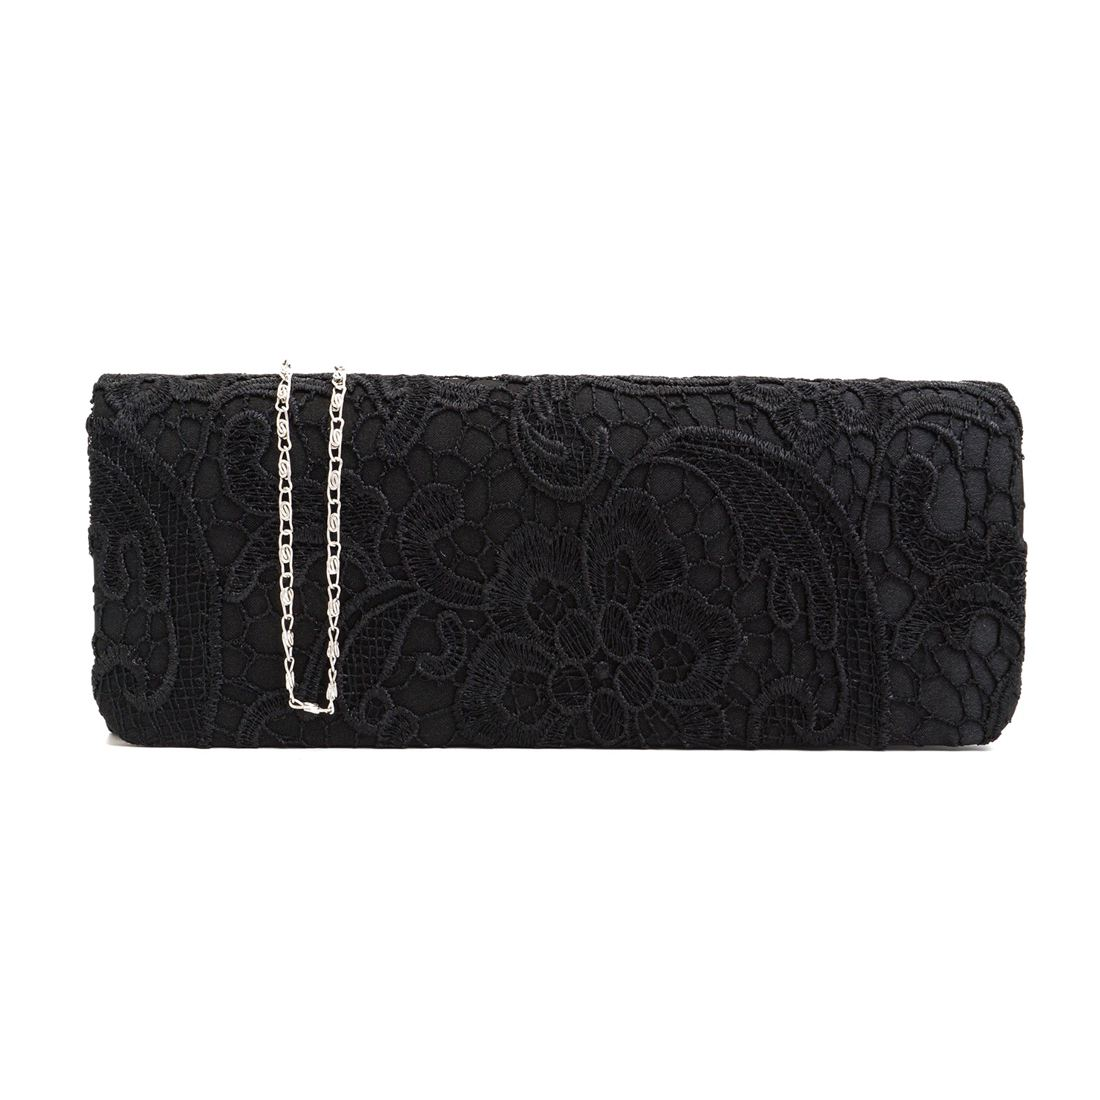 5) Satin Floral Lace Designer Clutch Bag Evening Purse Ladies Party Wedding Women, Black